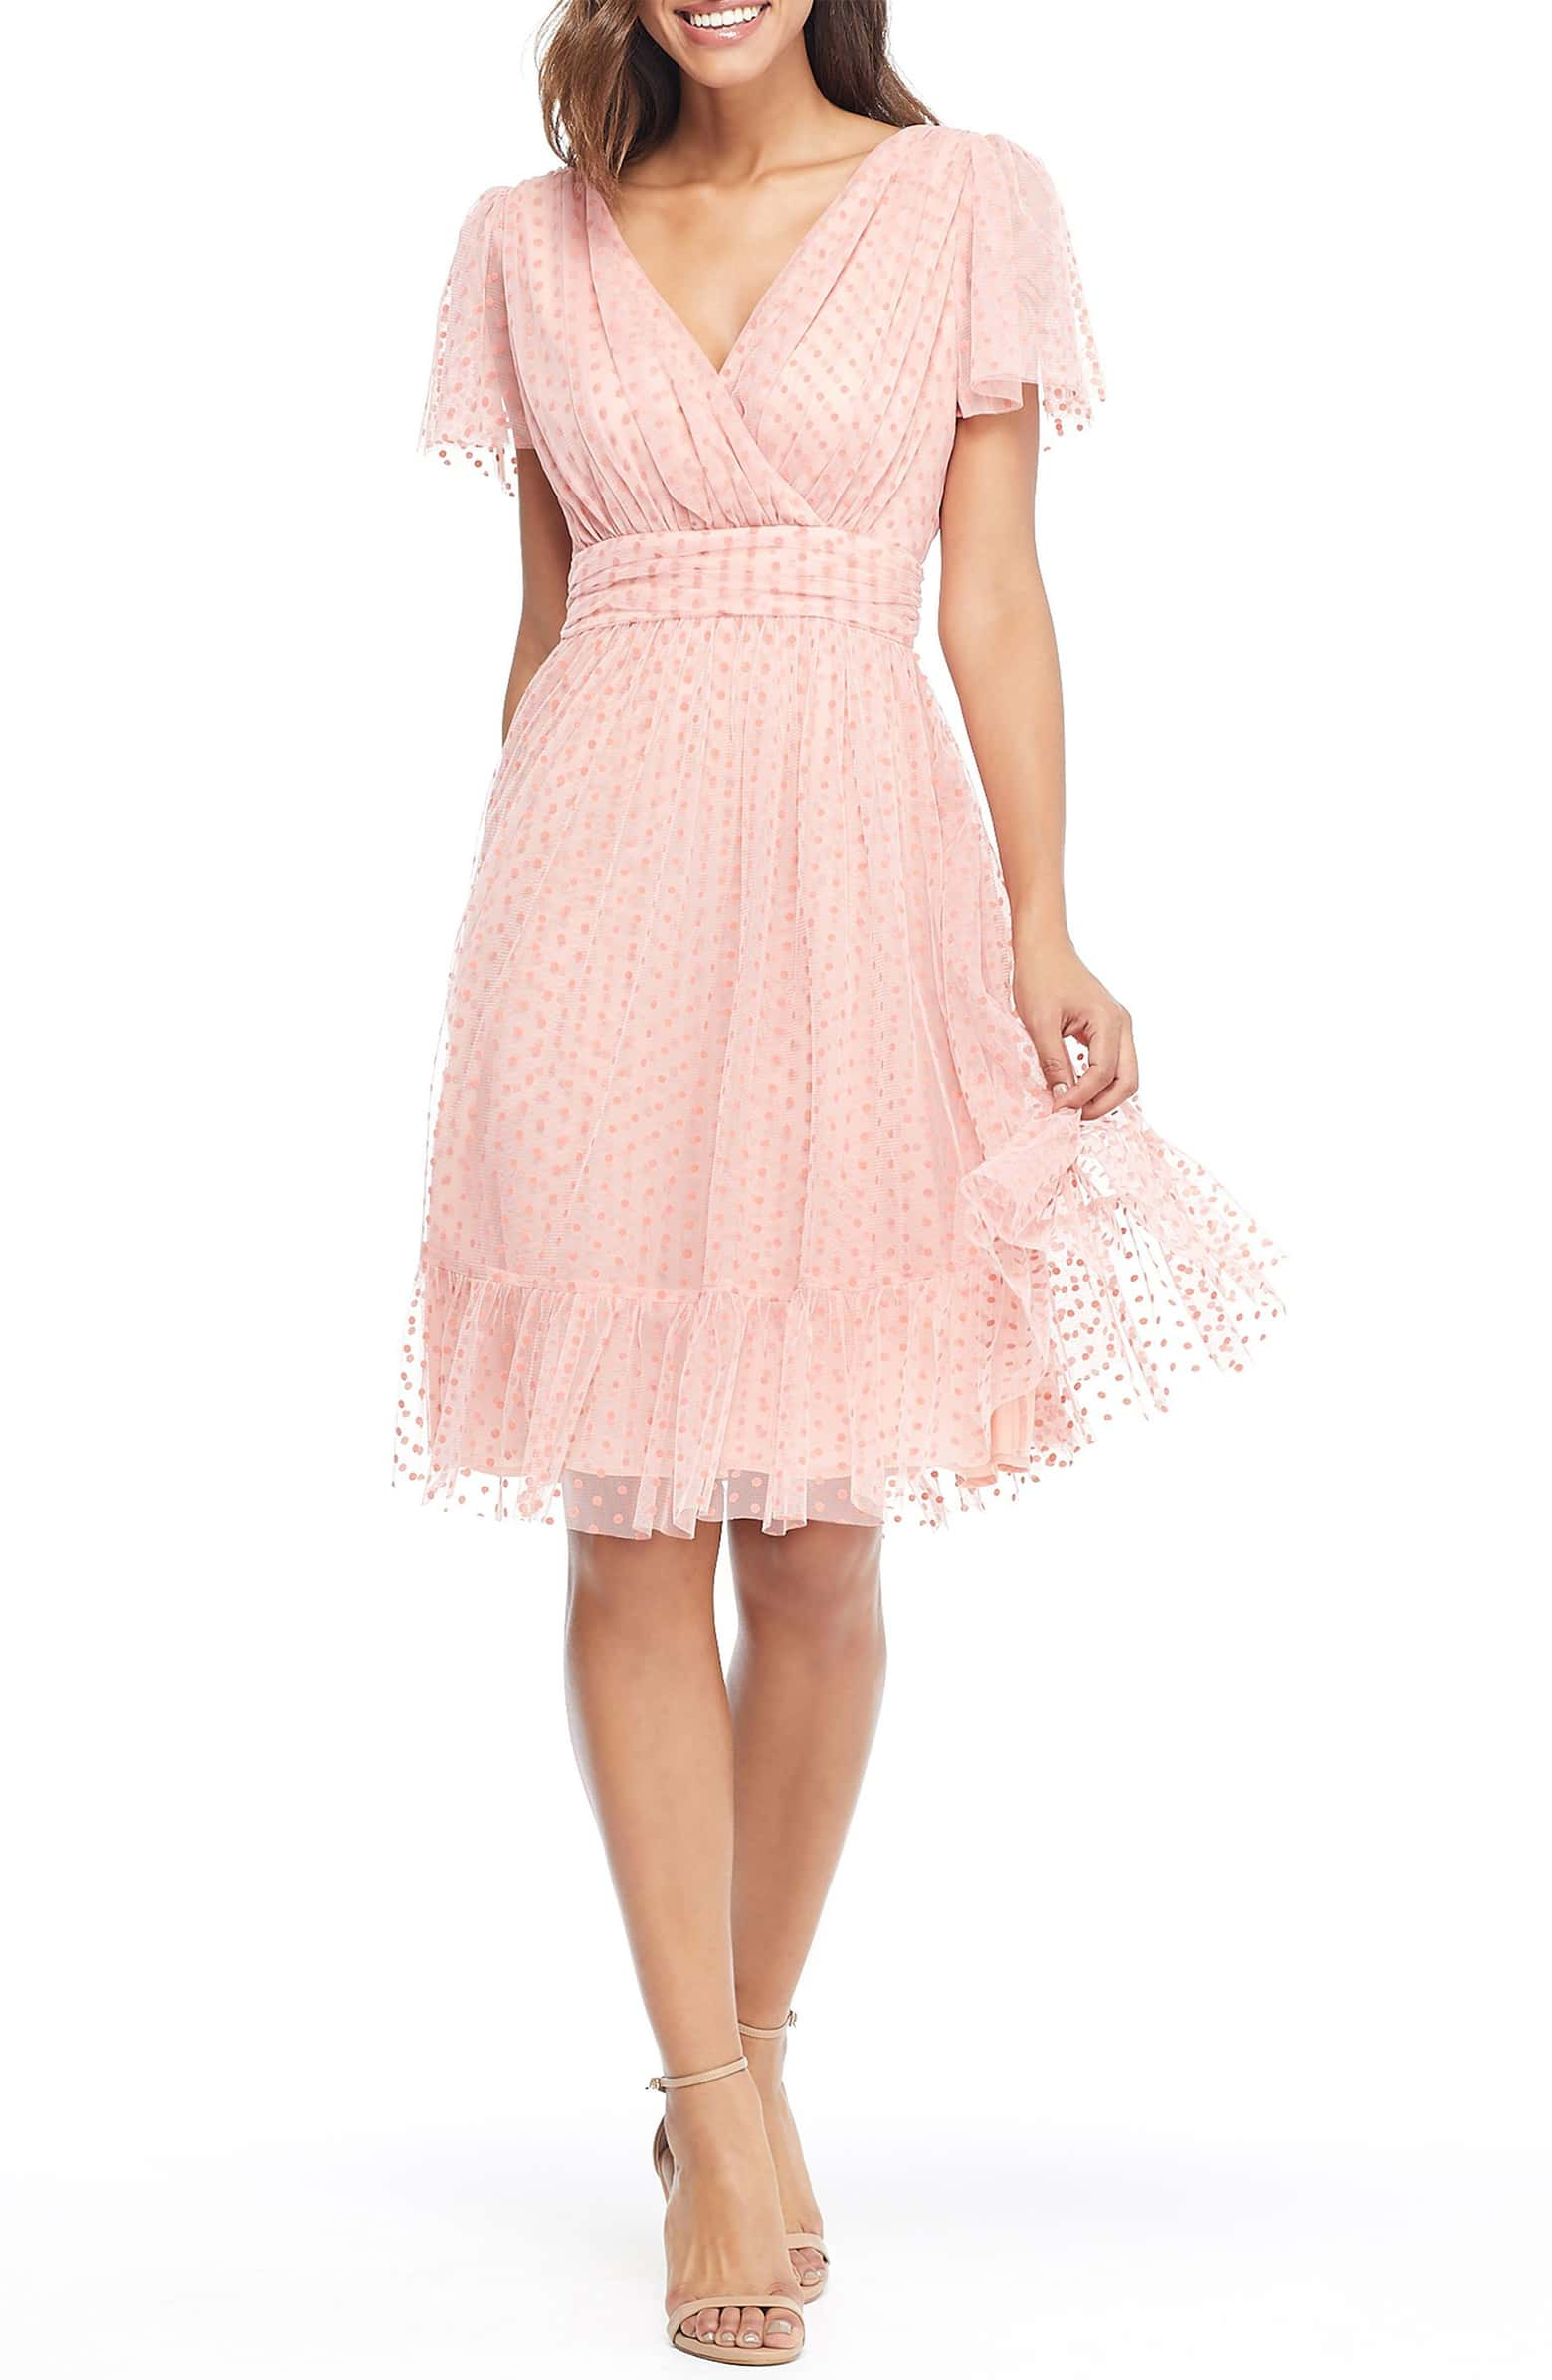 dot shirred dress.jpg